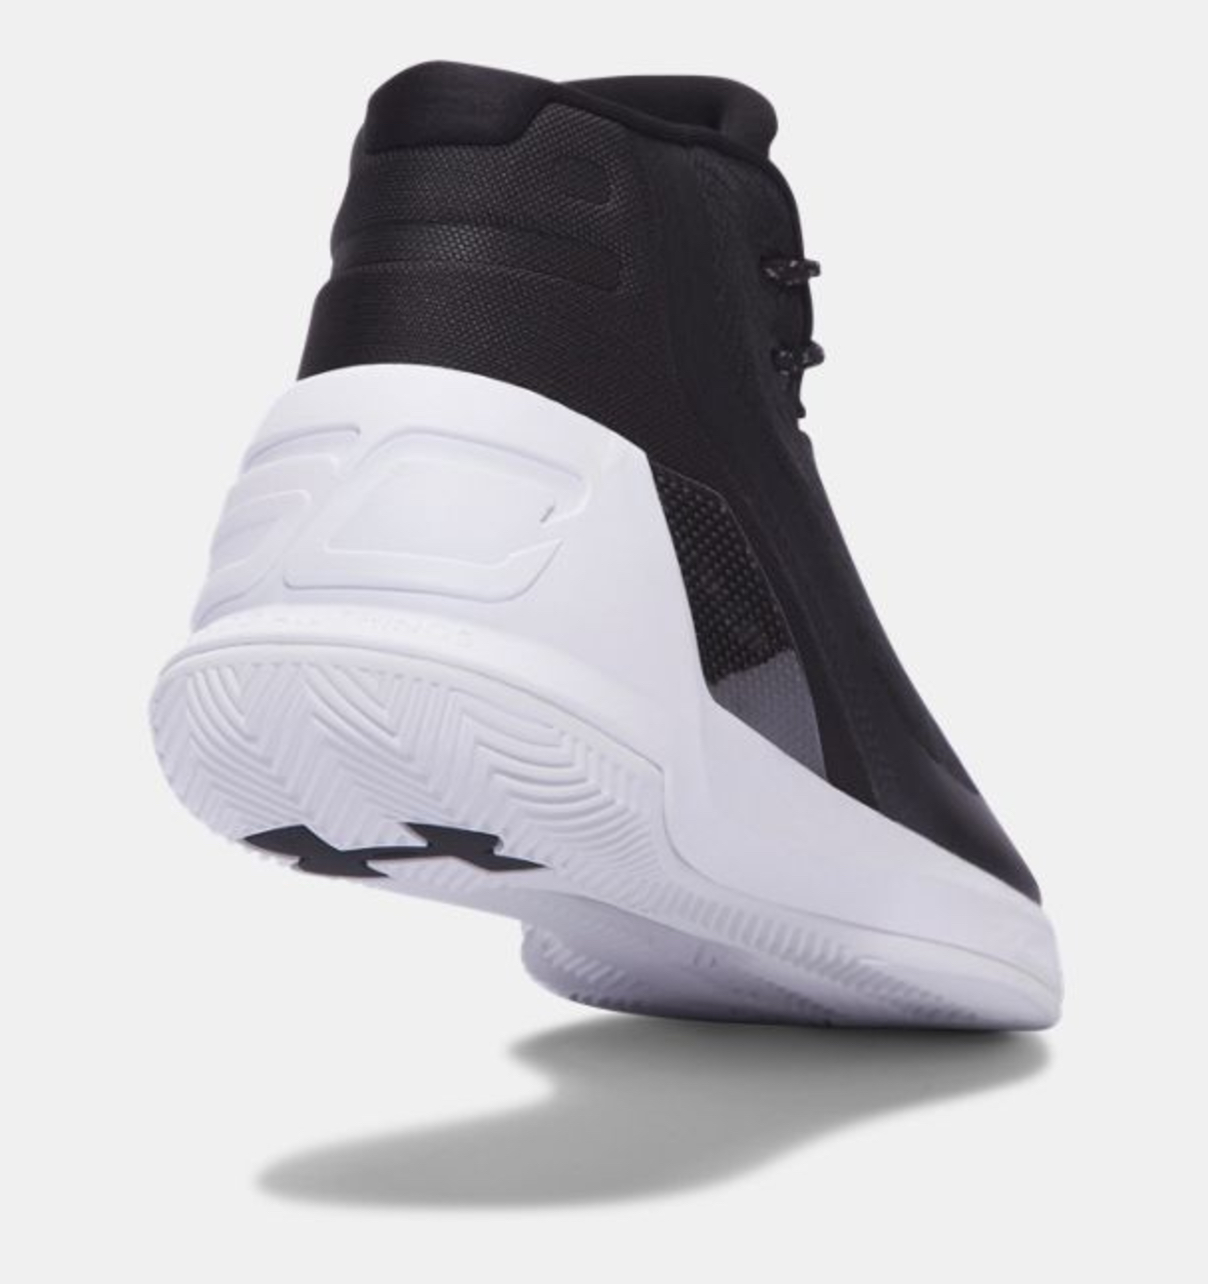 A Black and White Curry 3 is Nearly